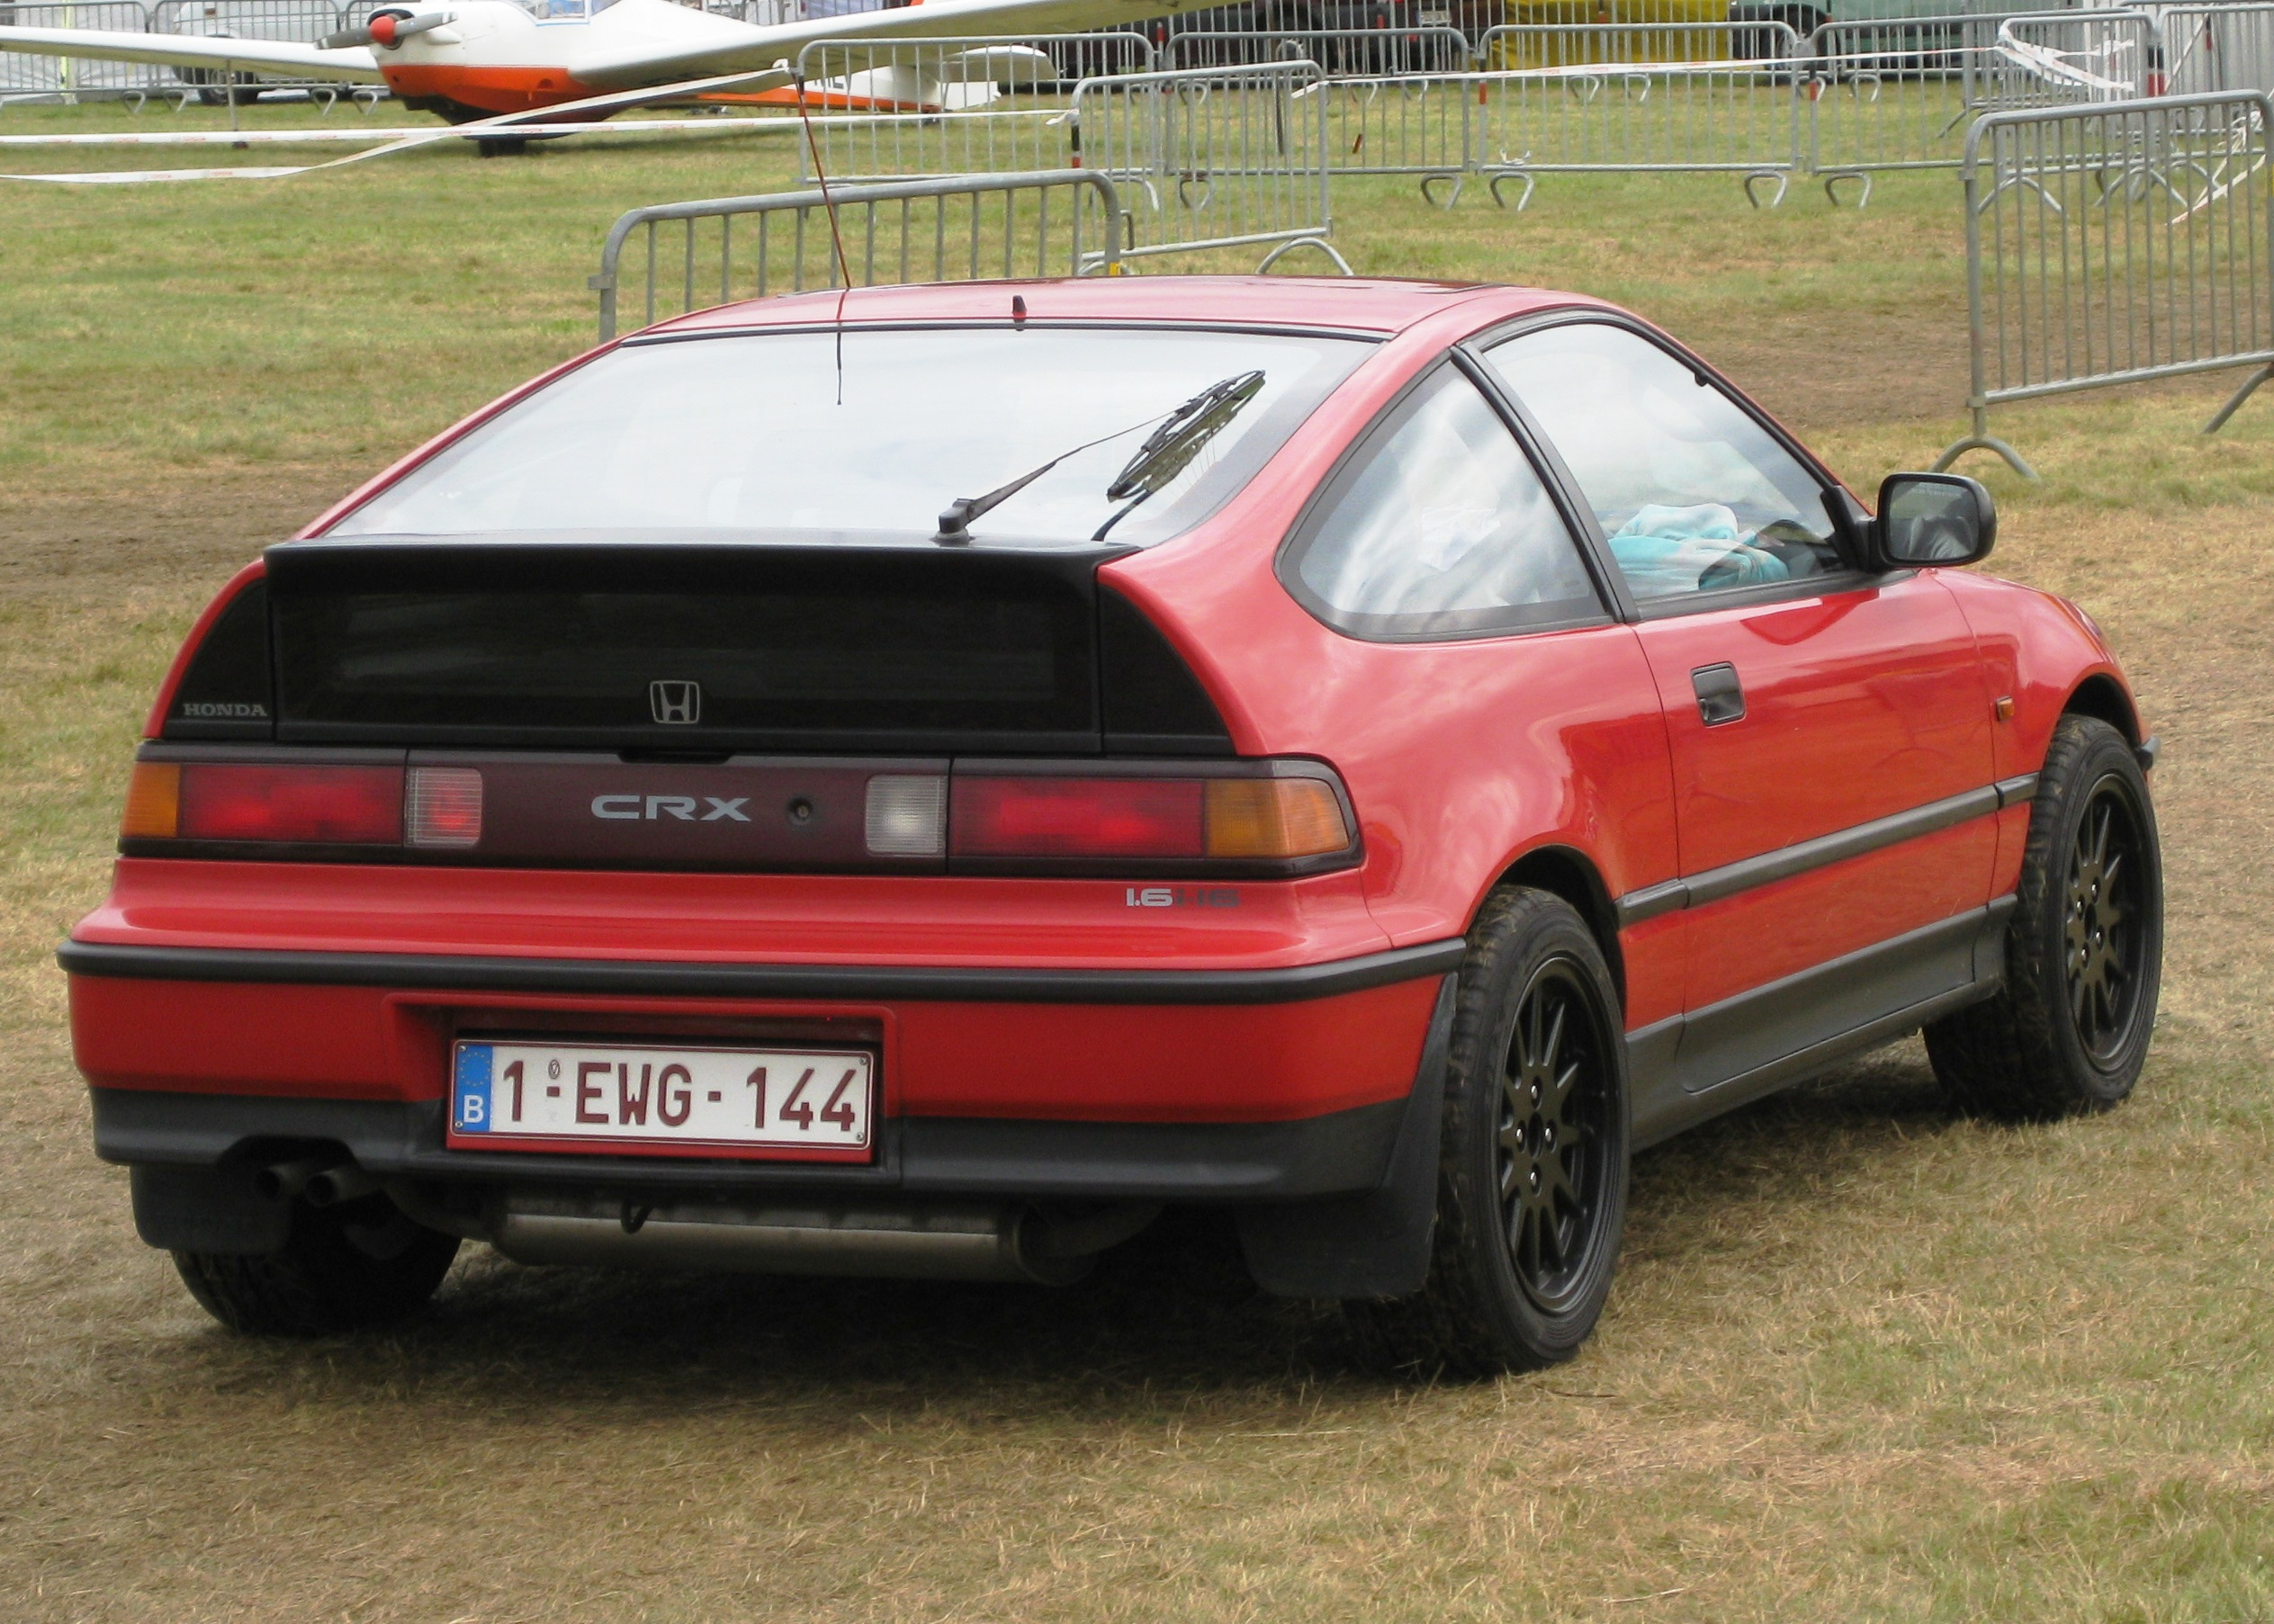 file honda crx 1 6i 16 leaving schaffen diest jpg   wikimedia commons